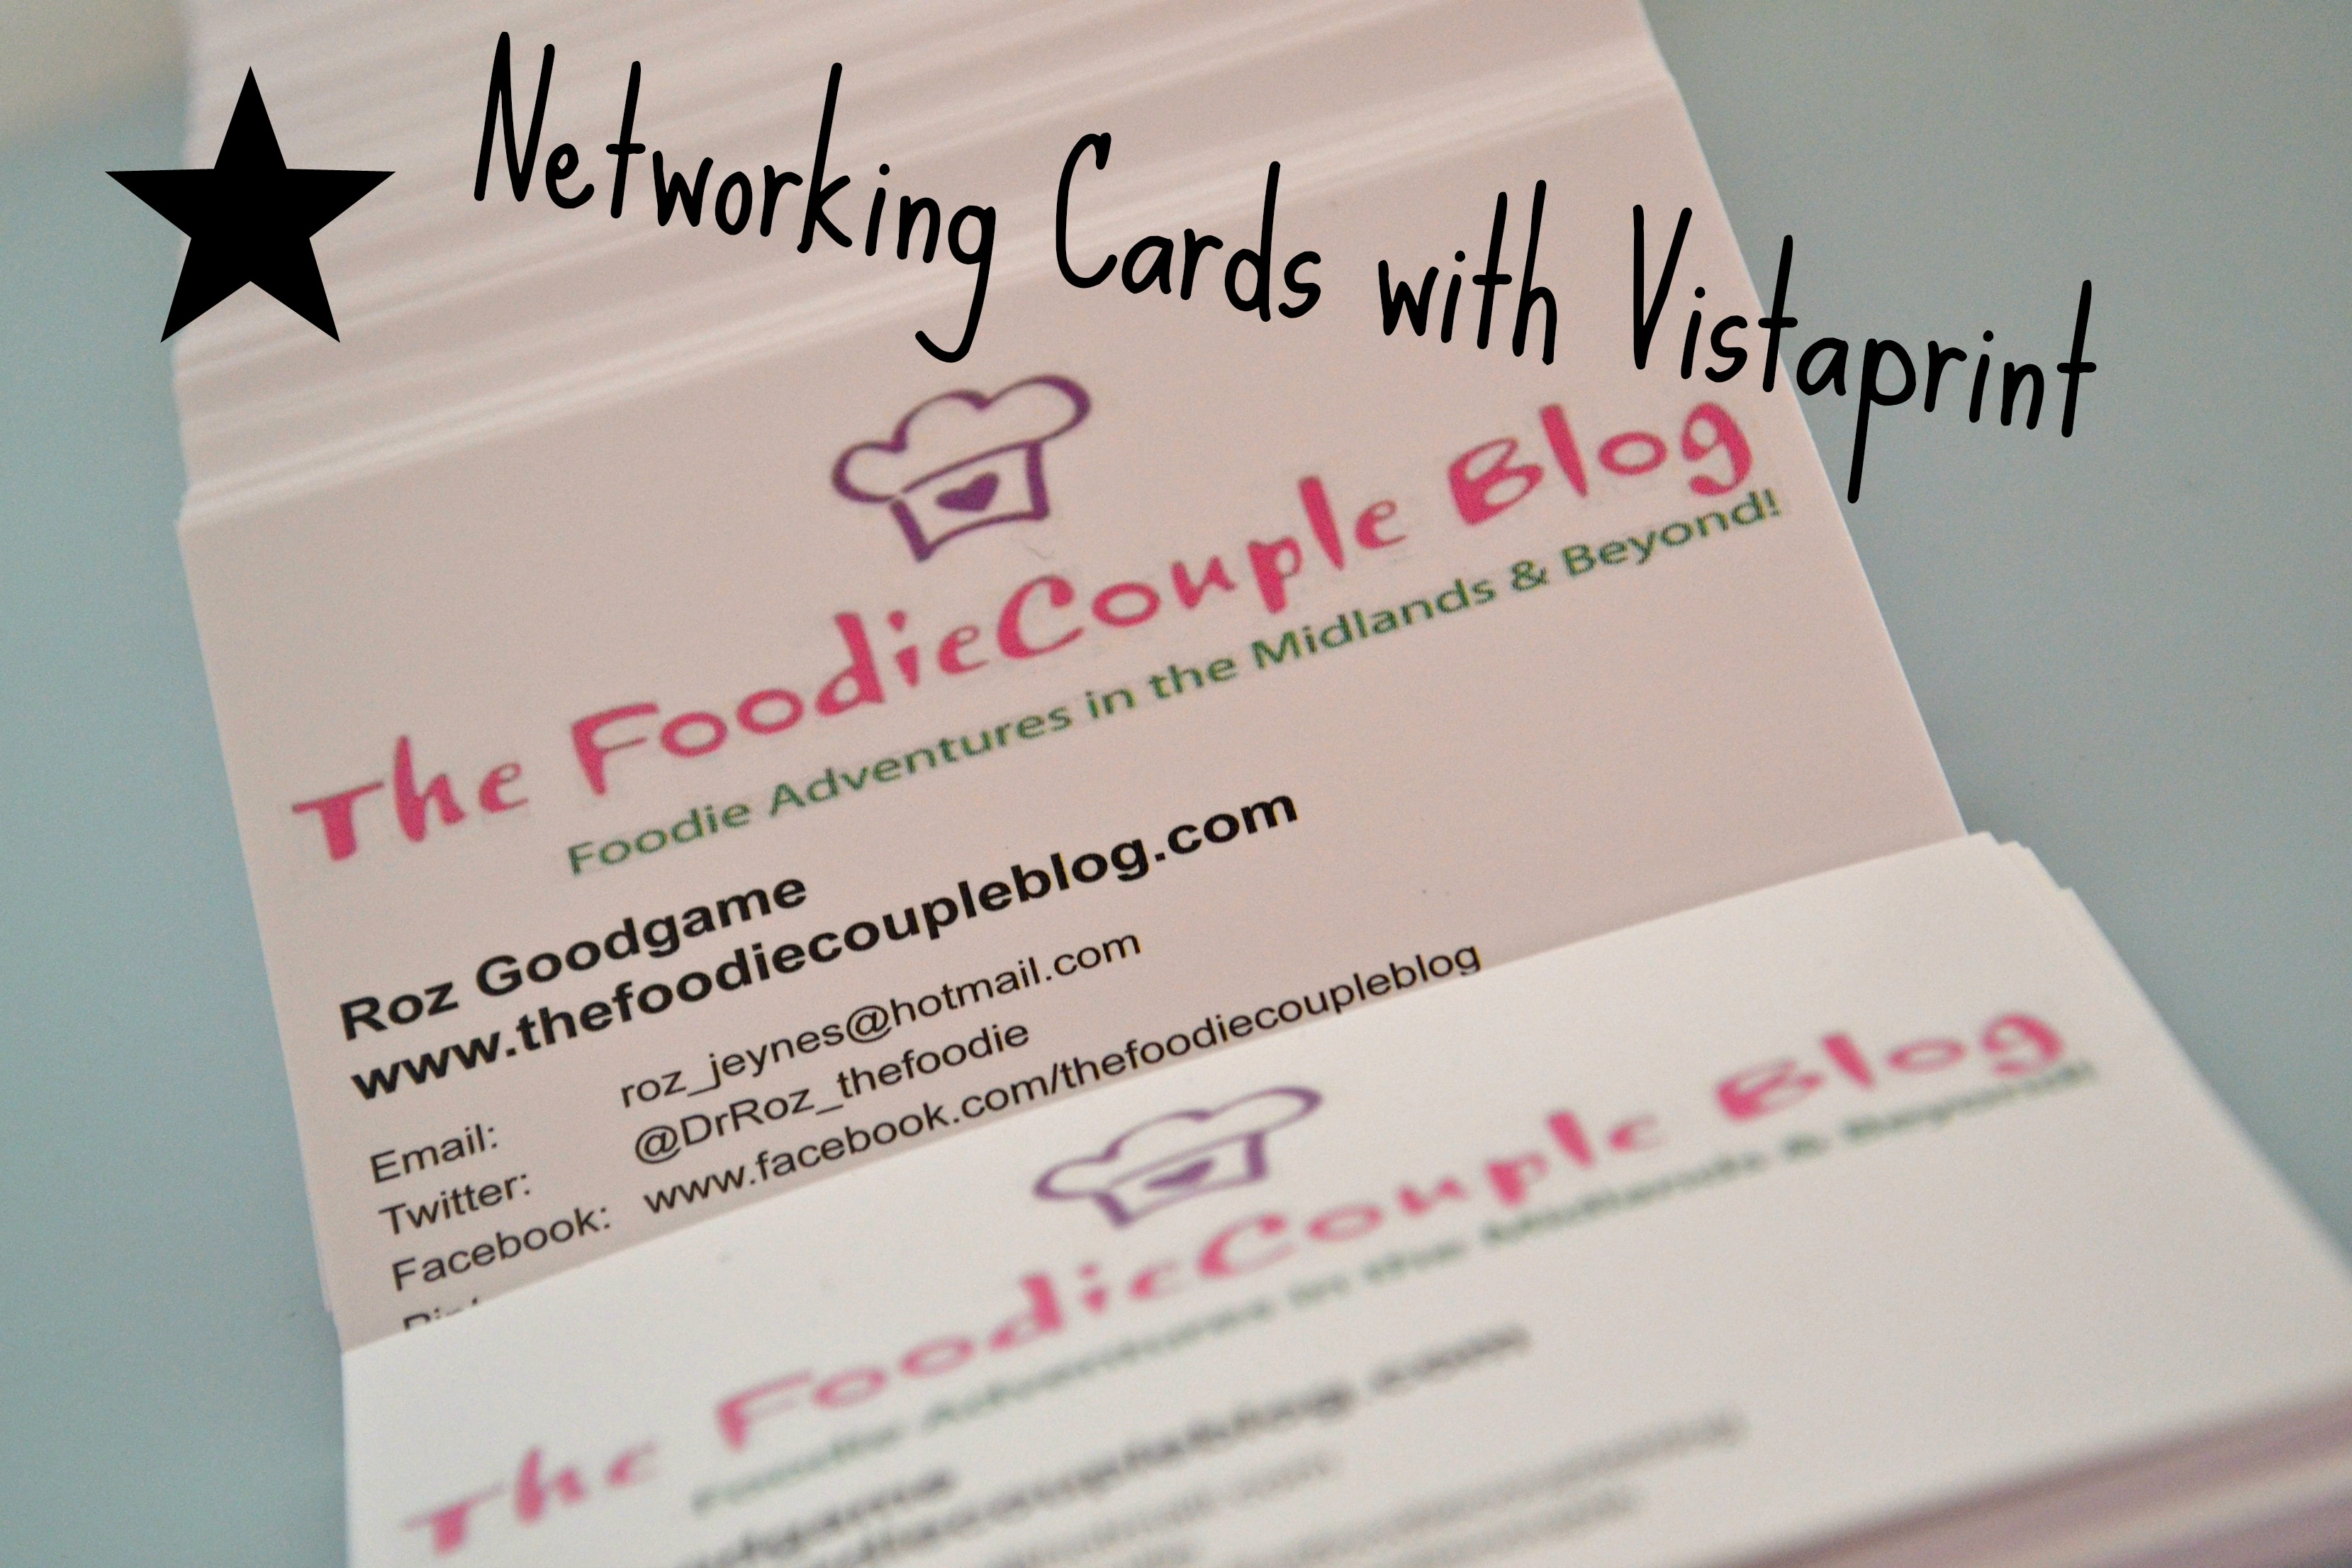 networking cards with vistaprint – the foo family blog